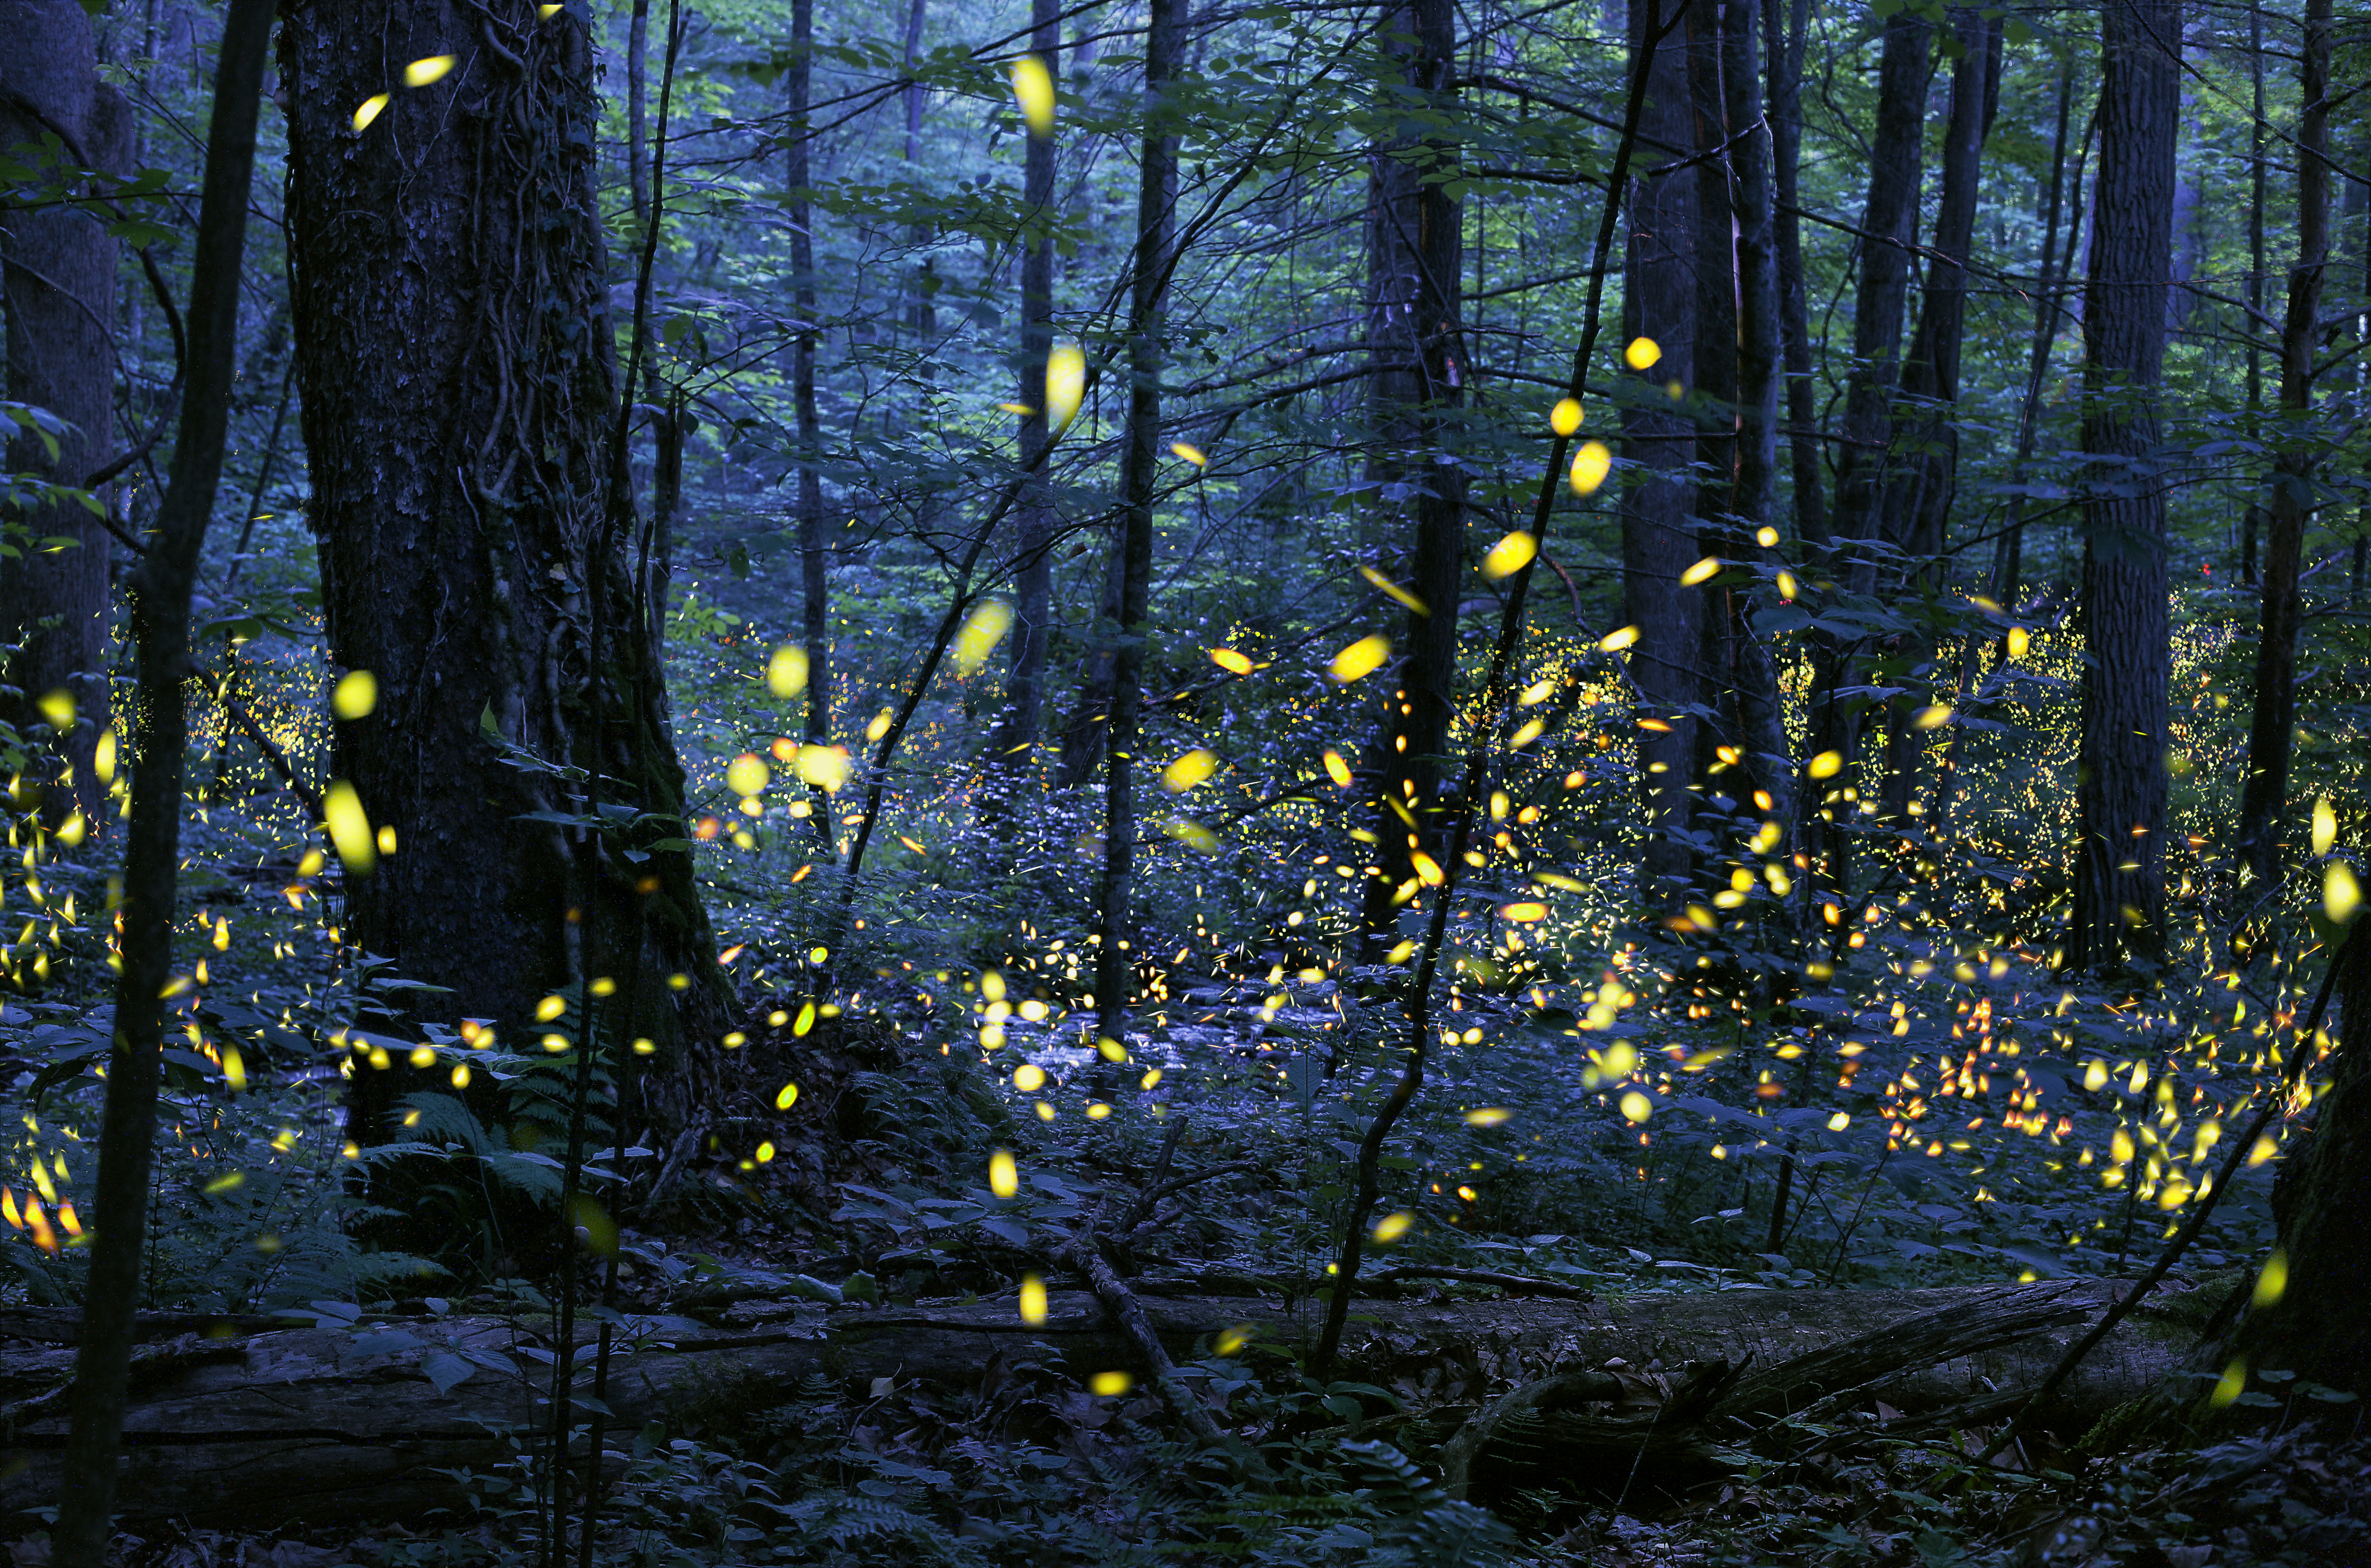 """""""Gathering of Souls,"""" which depicts Photinus carolinus, the synchronous fireflies, won the Smithsonian Photography Contest in 2016. Photo courtesy of Radim Schreiber, FireflyExperience.org."""